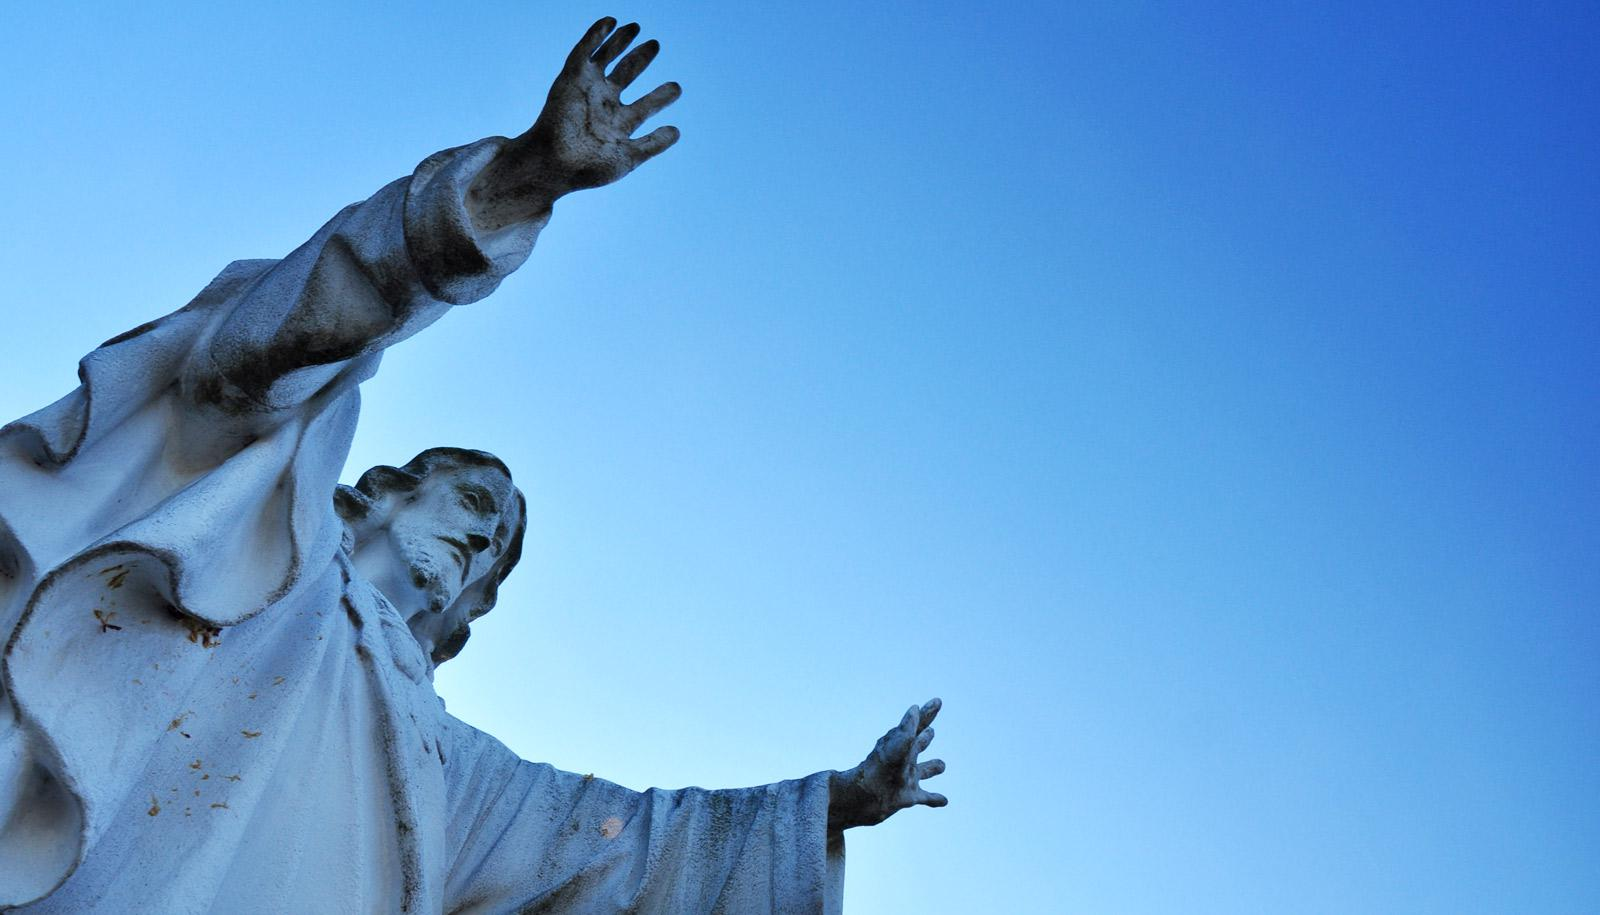 jesus statue against blue sky